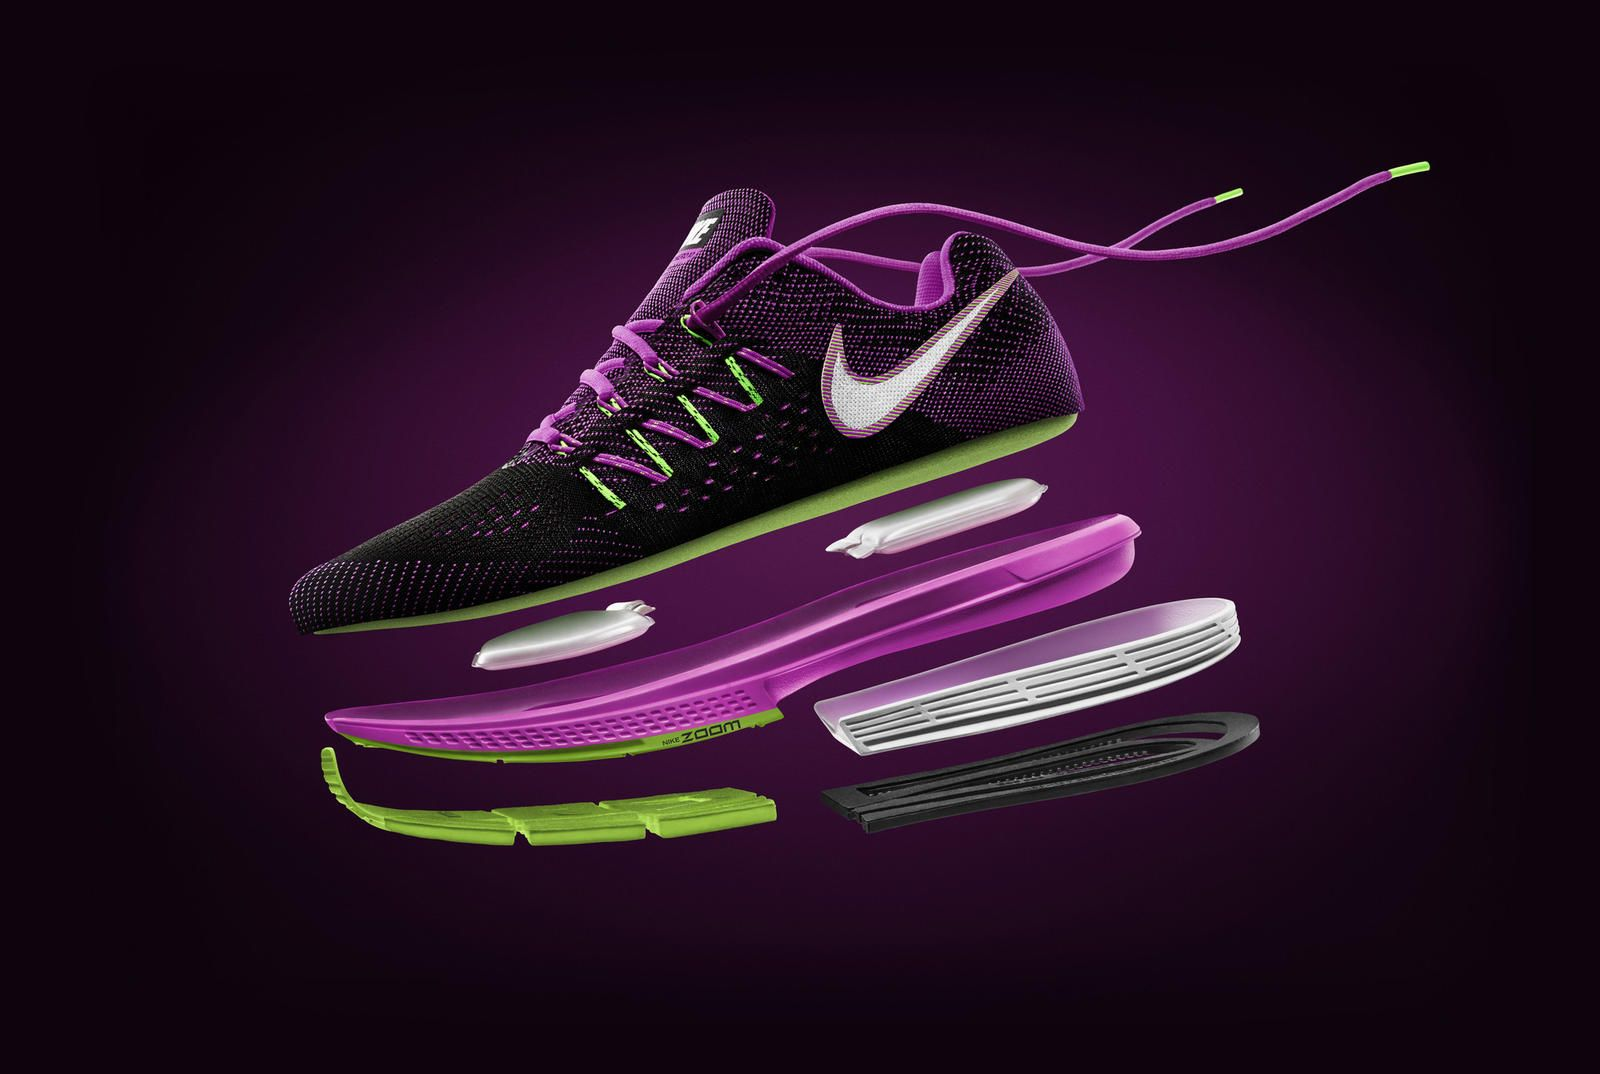 separation shoes f2e2b 27f01 reduced testeo nike air zoom vomero 10 3e9fe 74205  amazon this season nike  is introducing the tenth entry to its vomero line with the air